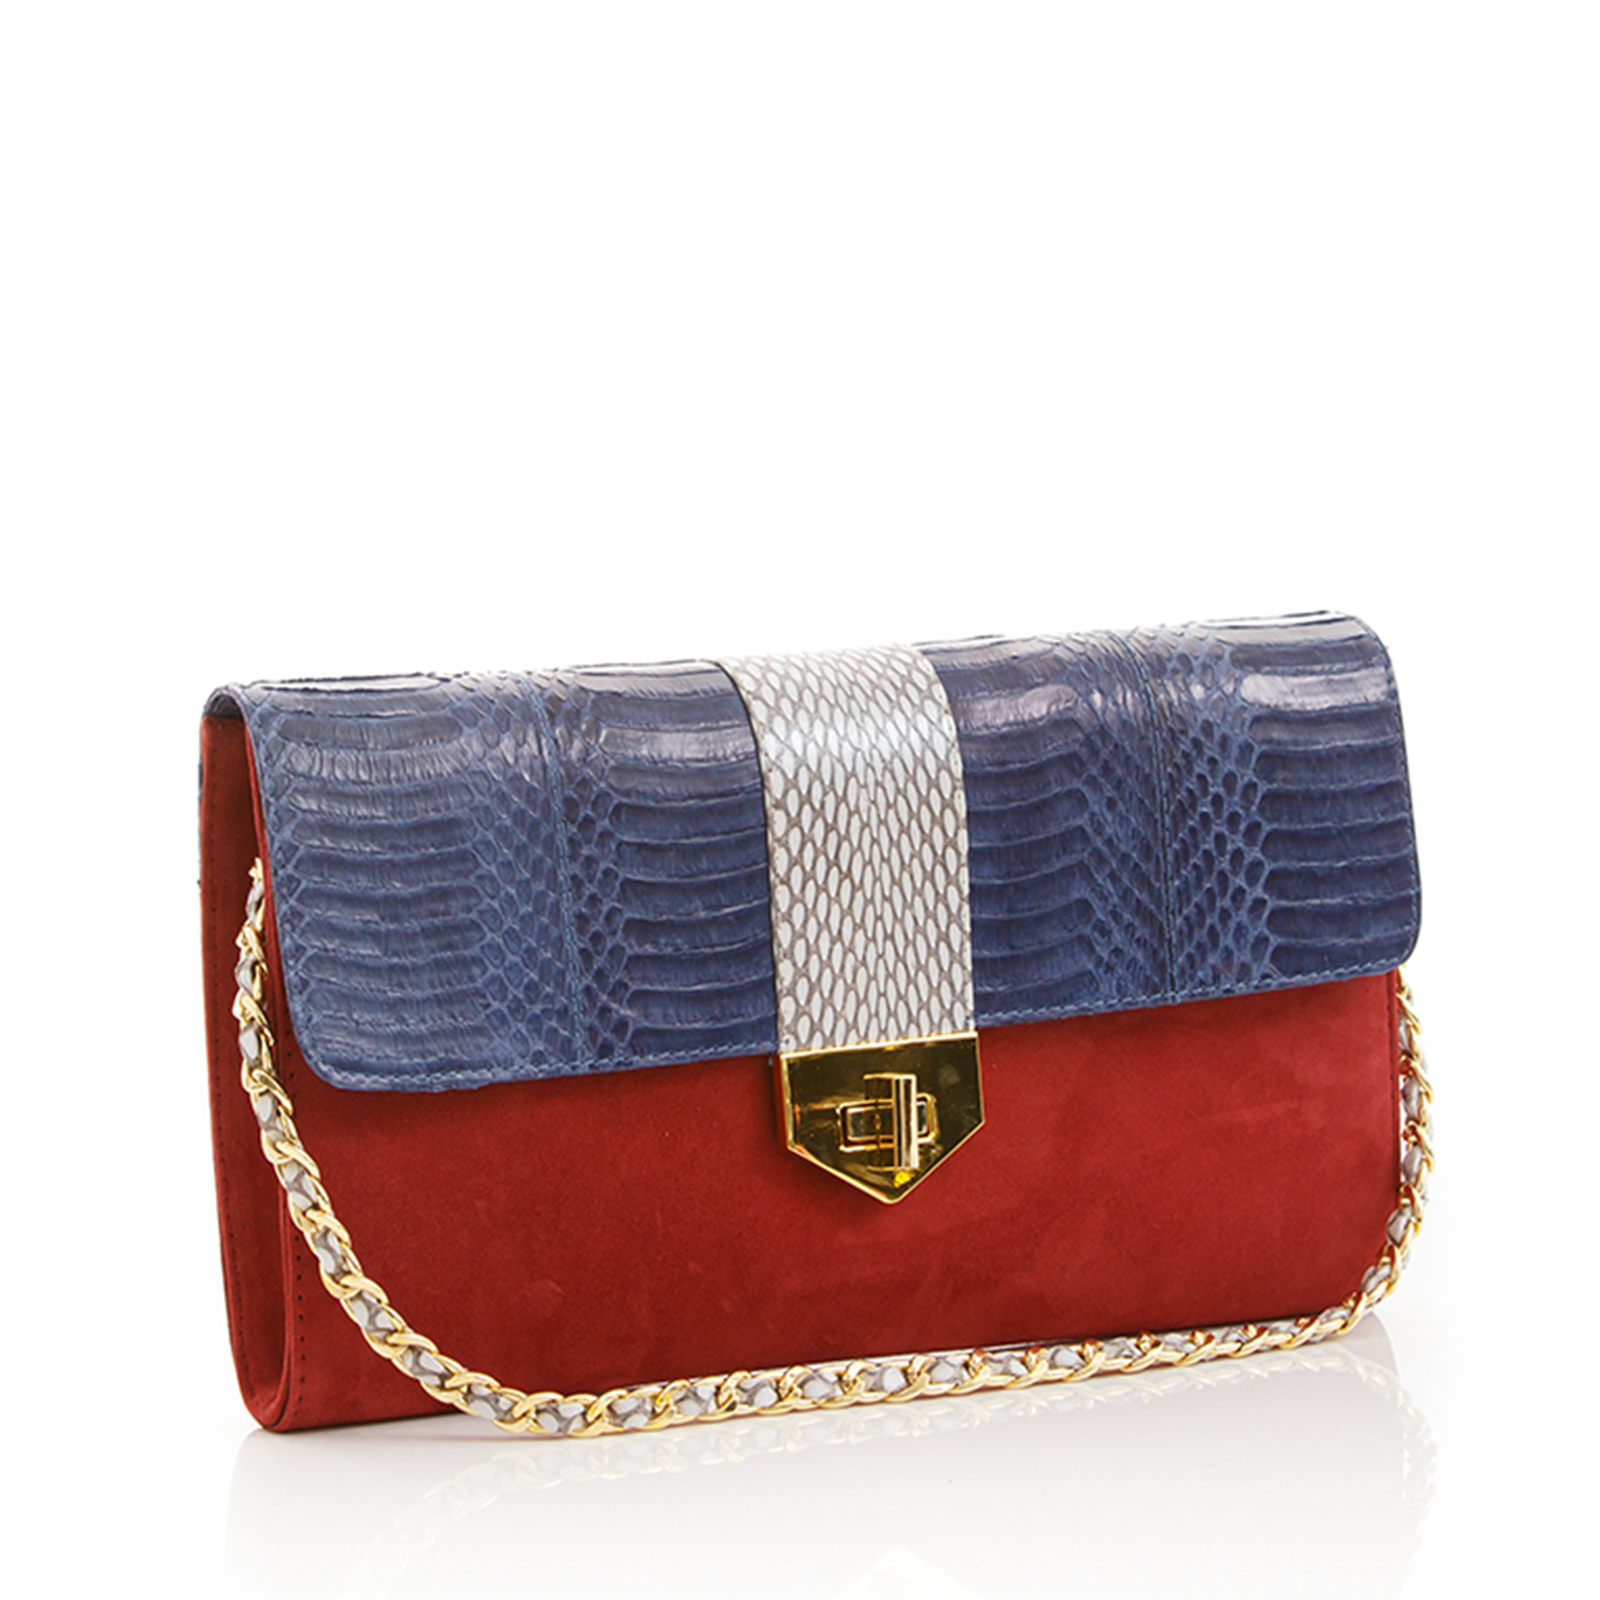 Clutch Bag with removable strap LUV YAH Navy Blue Cobra and Carmin Suede